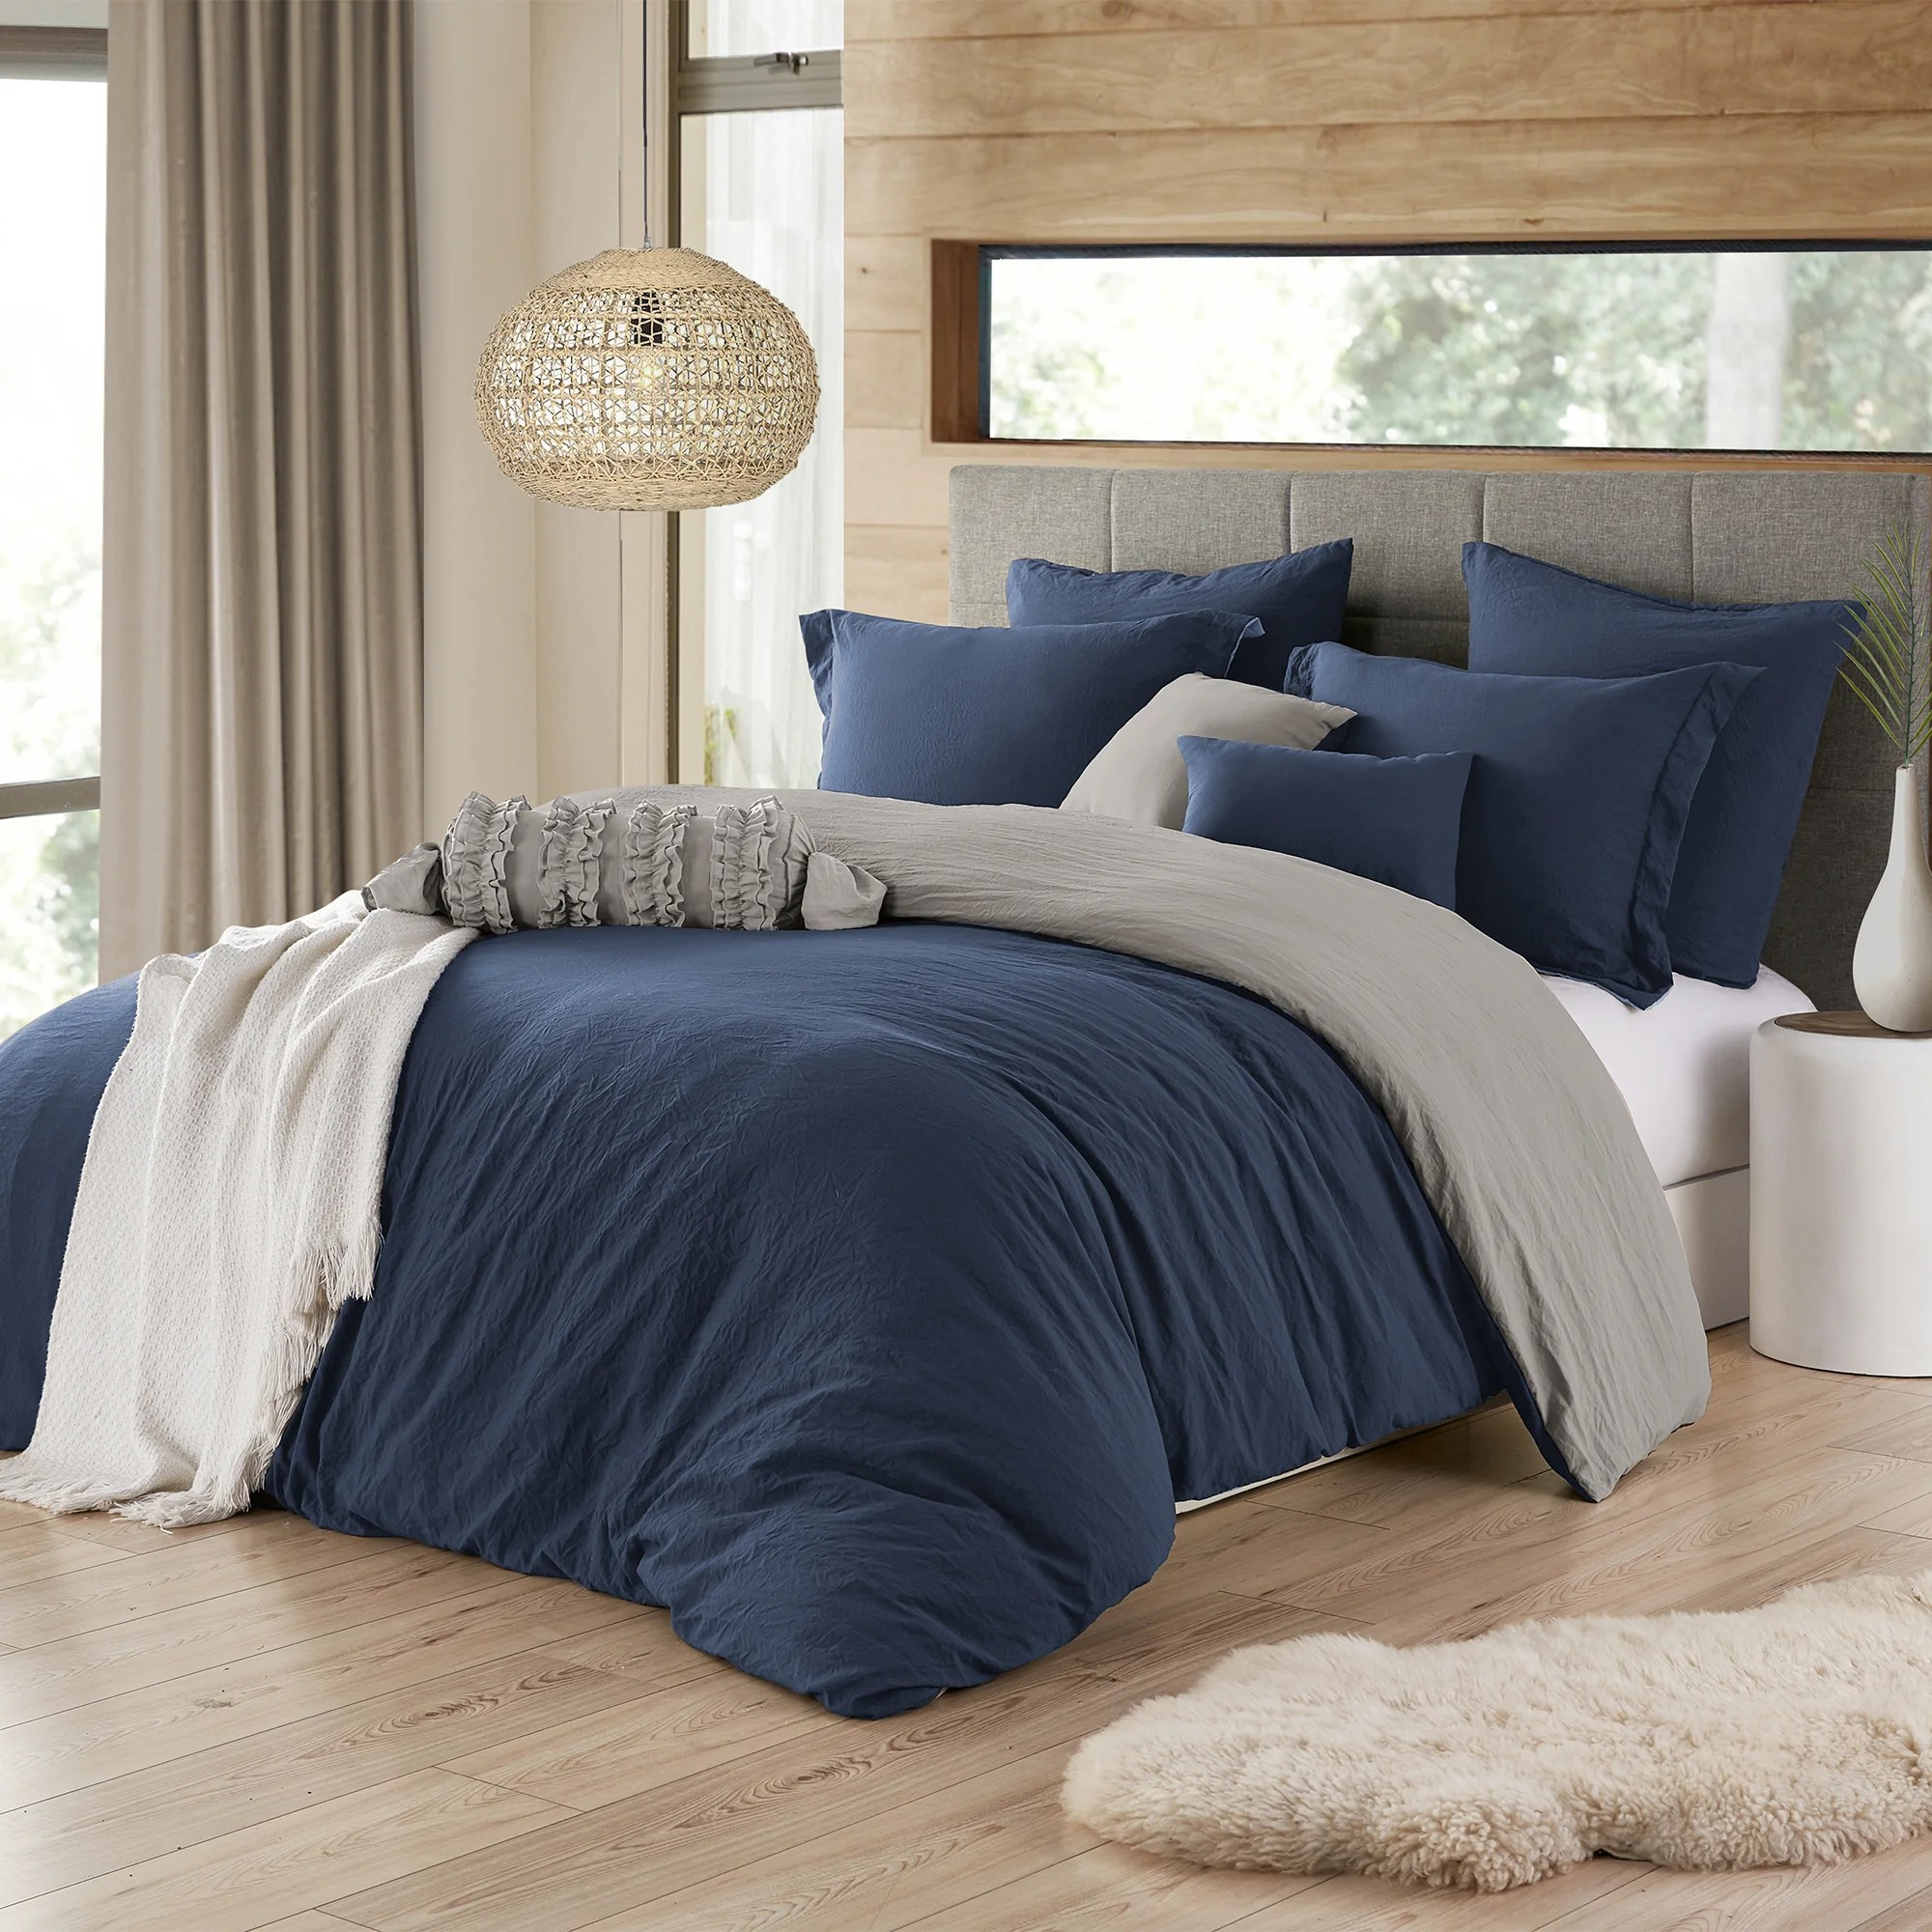 Duvet Covers Sets You Ll Love In 2021 Wayfair